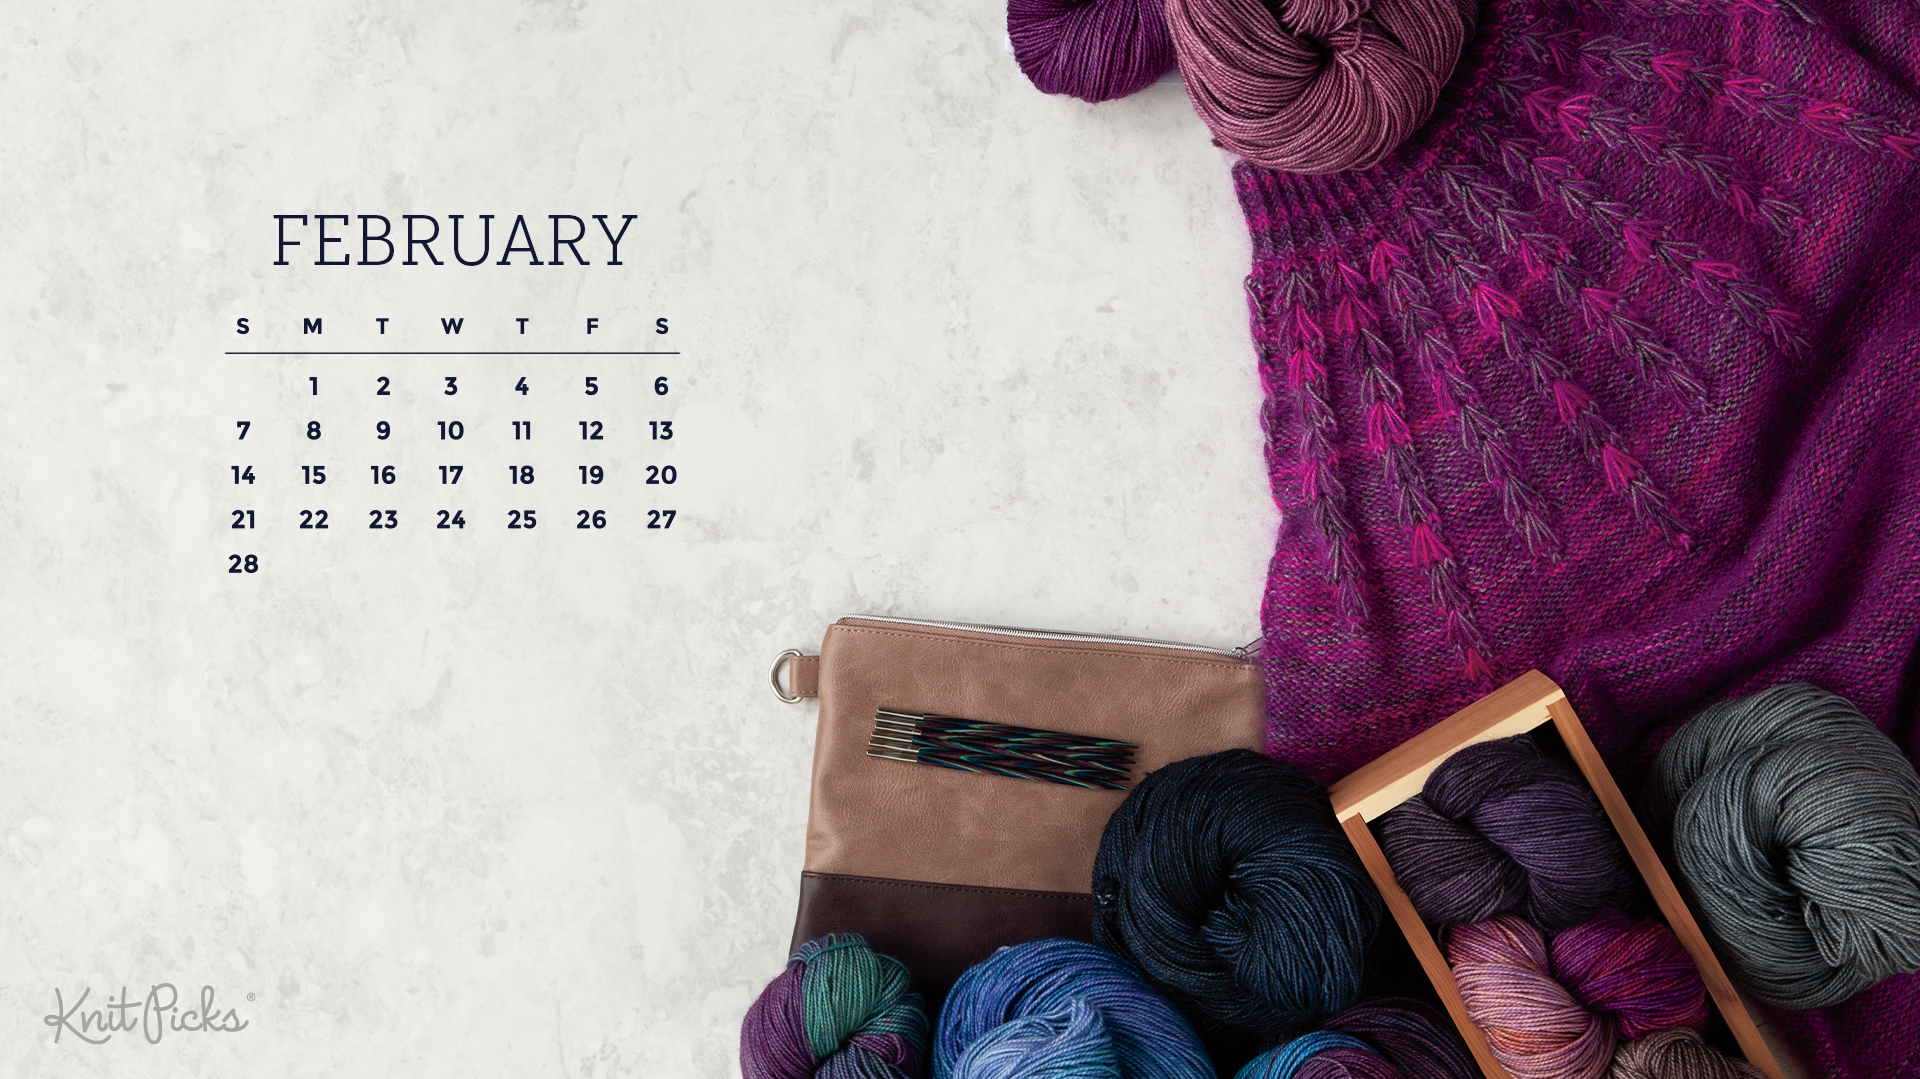 Free Downloadable February 2021 Calendar   KnitPicks Staff